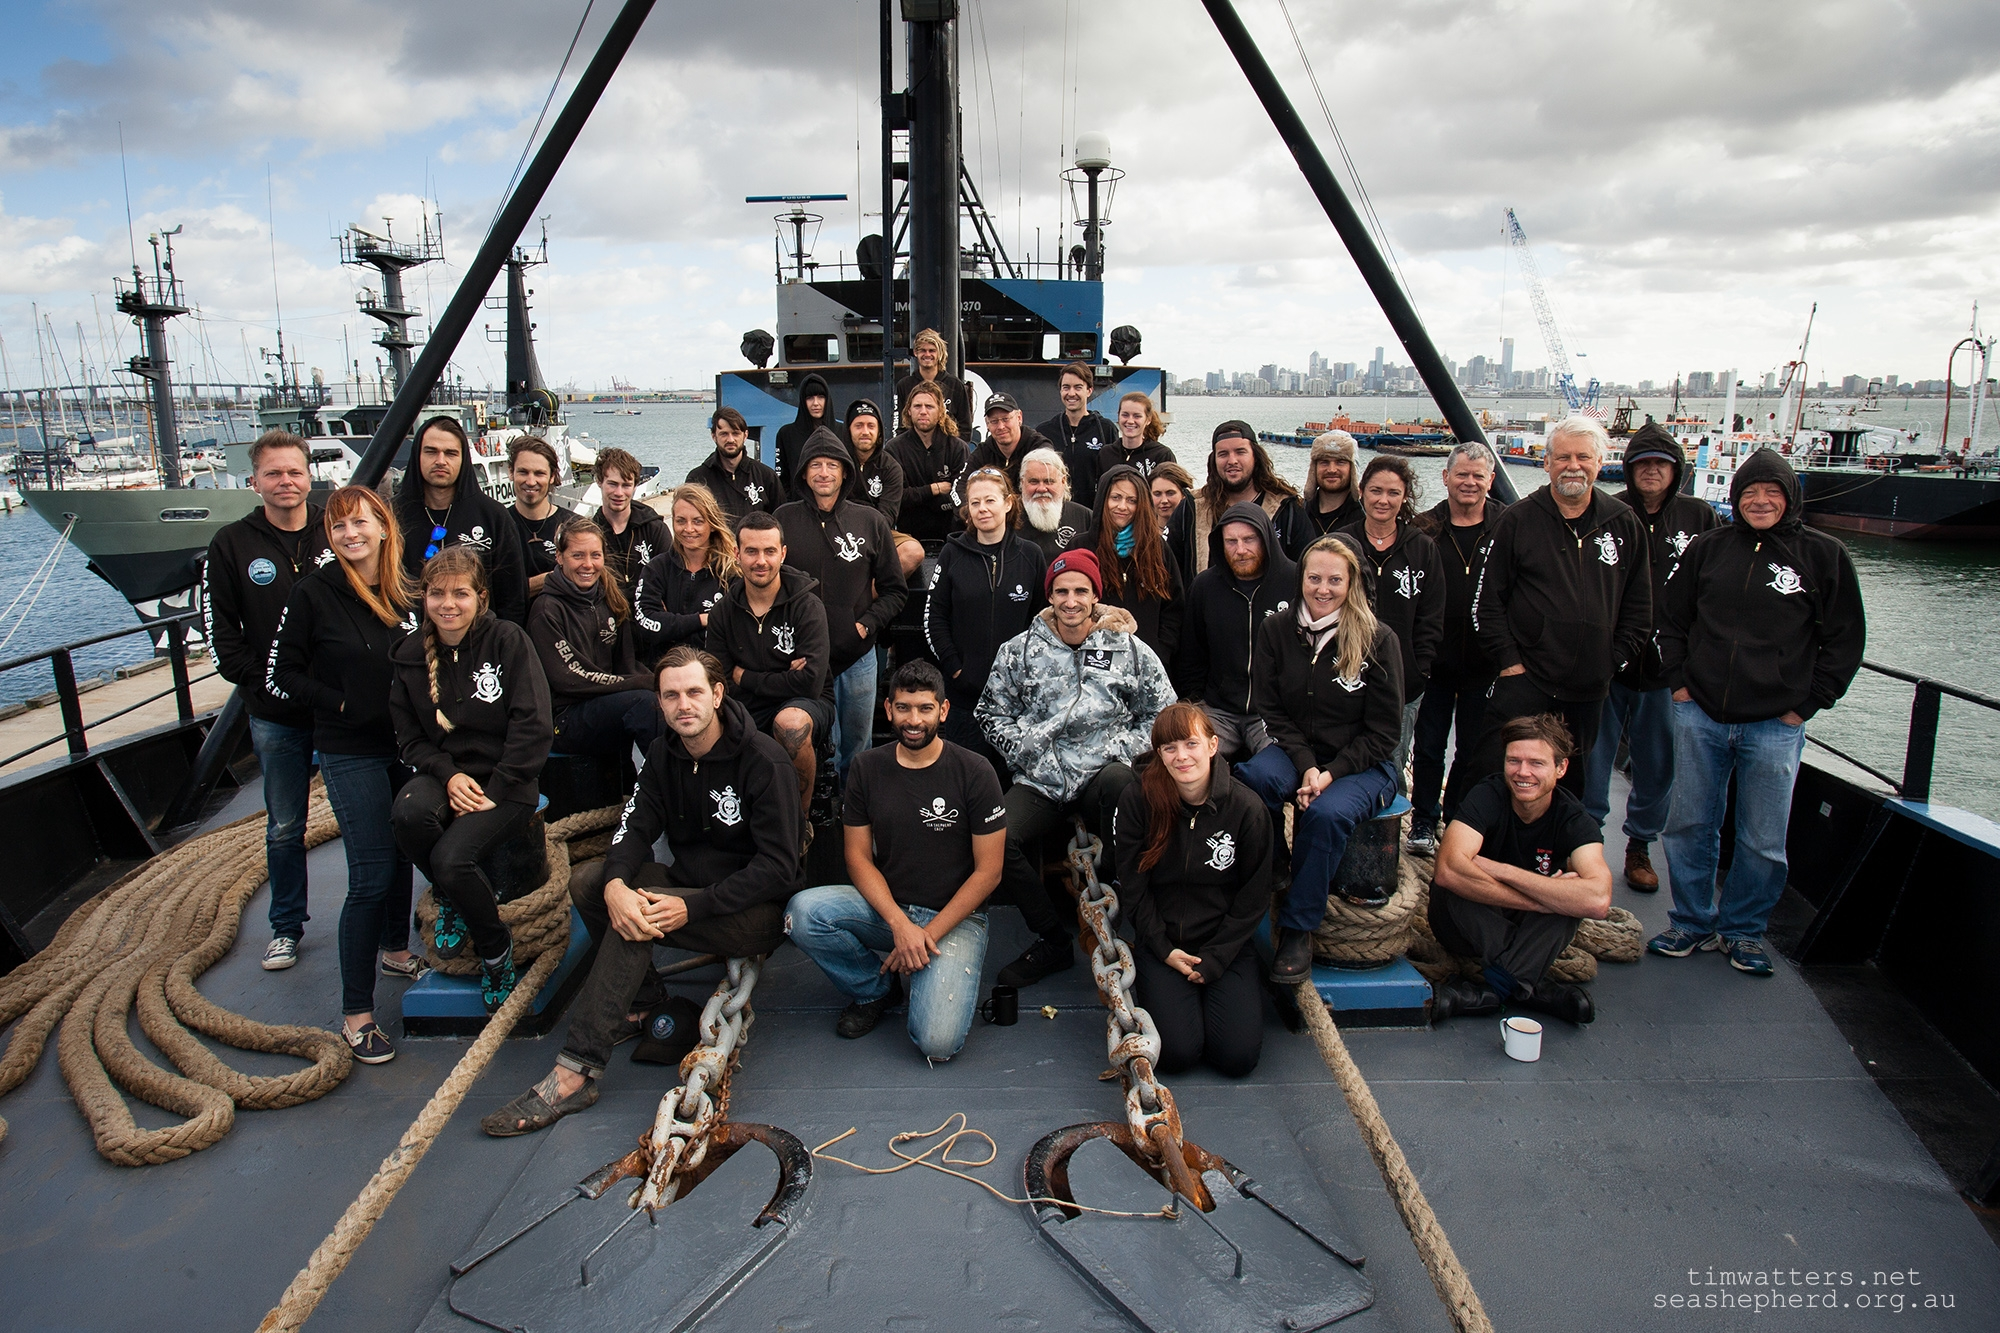 The crew of the M/Y Steve Irwin prior to departure to Antarctica - December 2013.